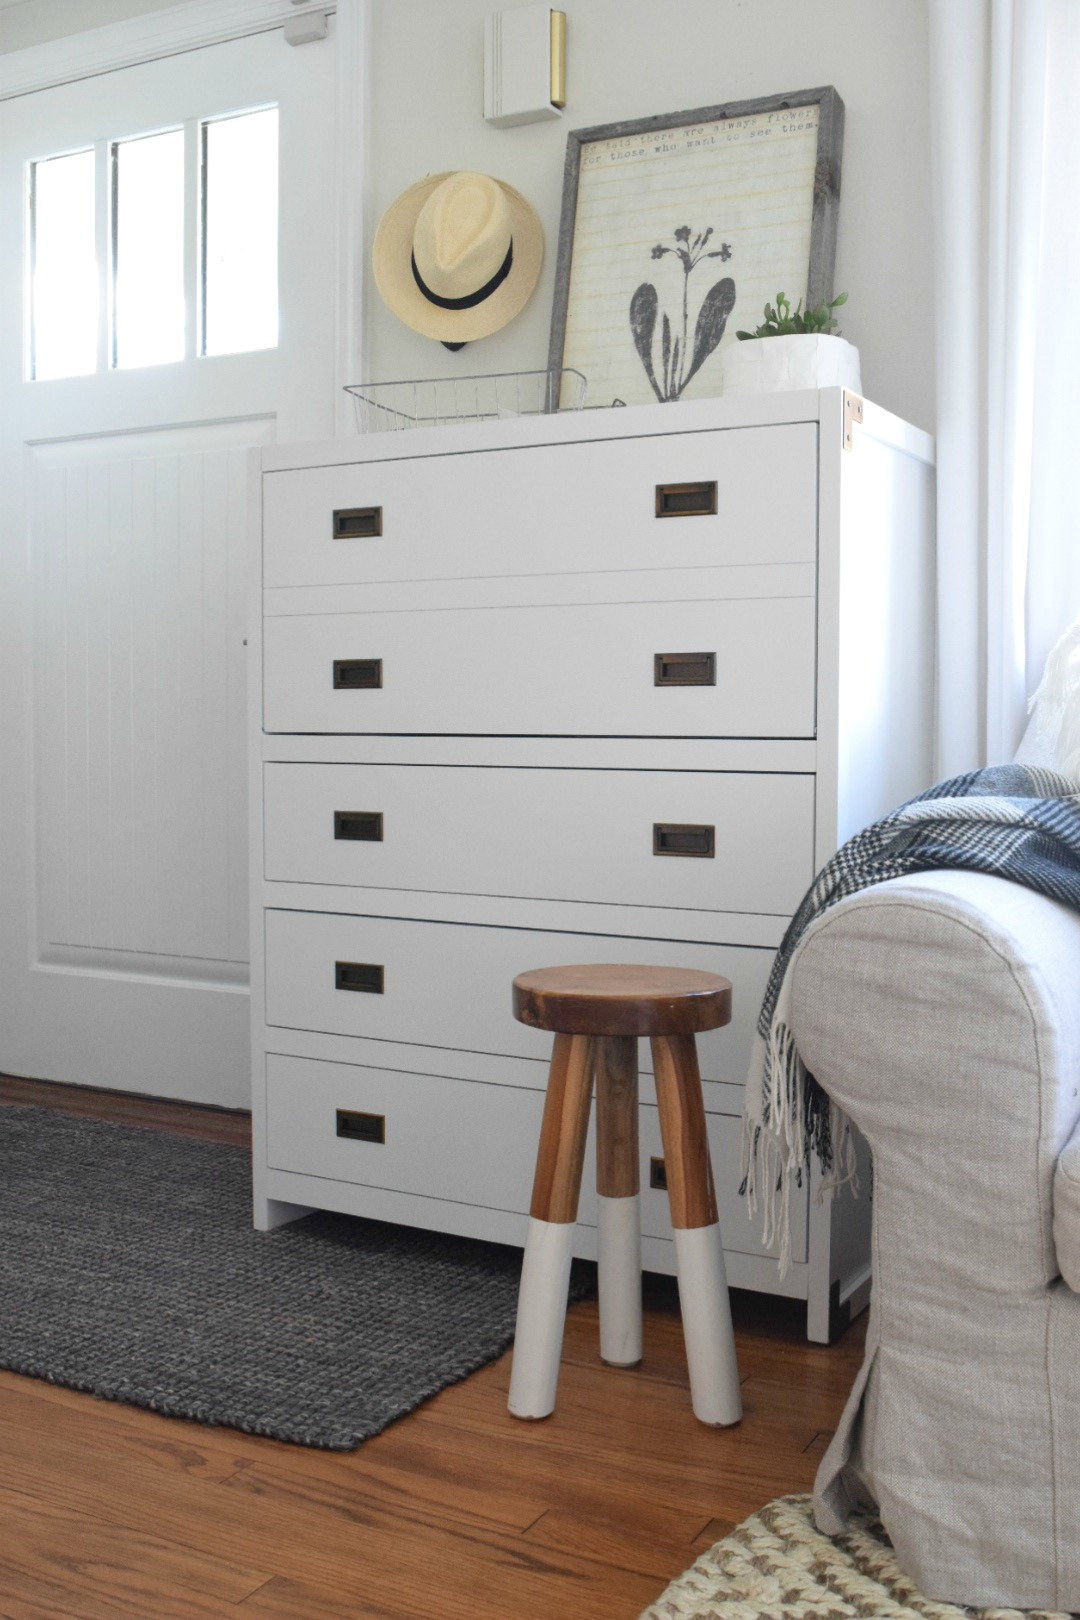 Desk For Small Space: Maximize A Small Space With A Secretary Desk